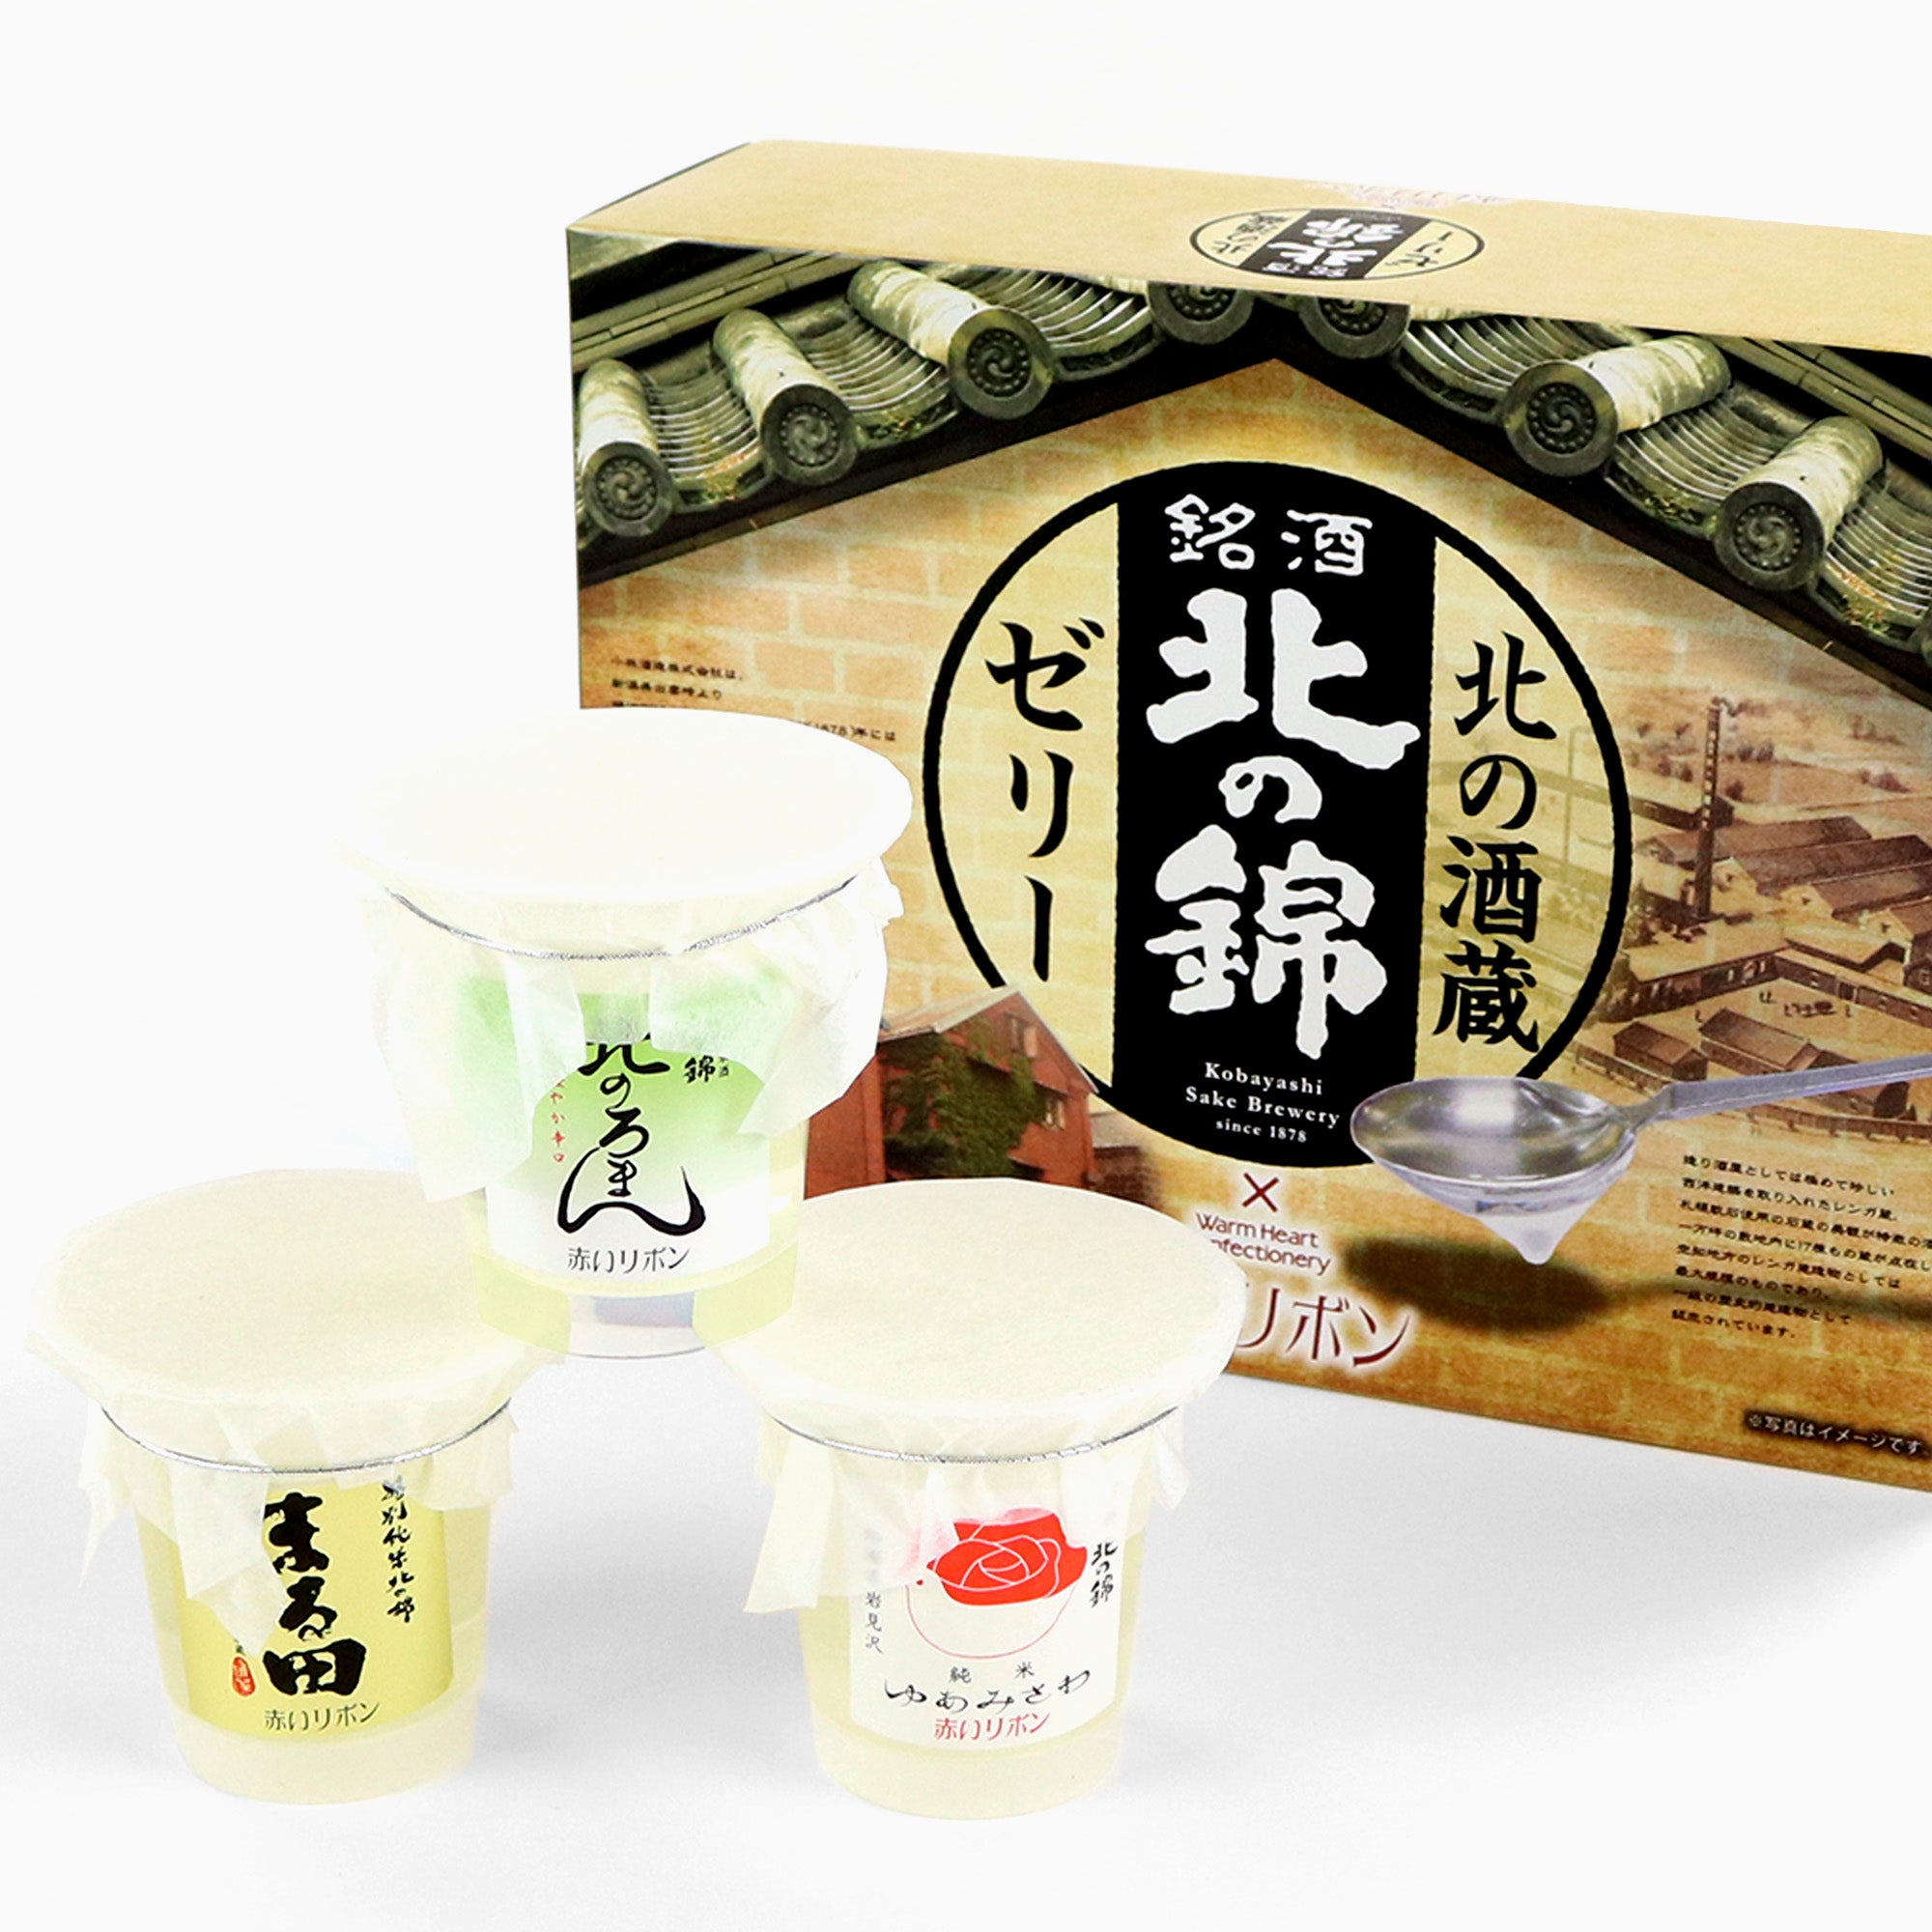 Akai Ribon Gift Box: Sake Jelly Flight (6 Cups, 3 Flavors)